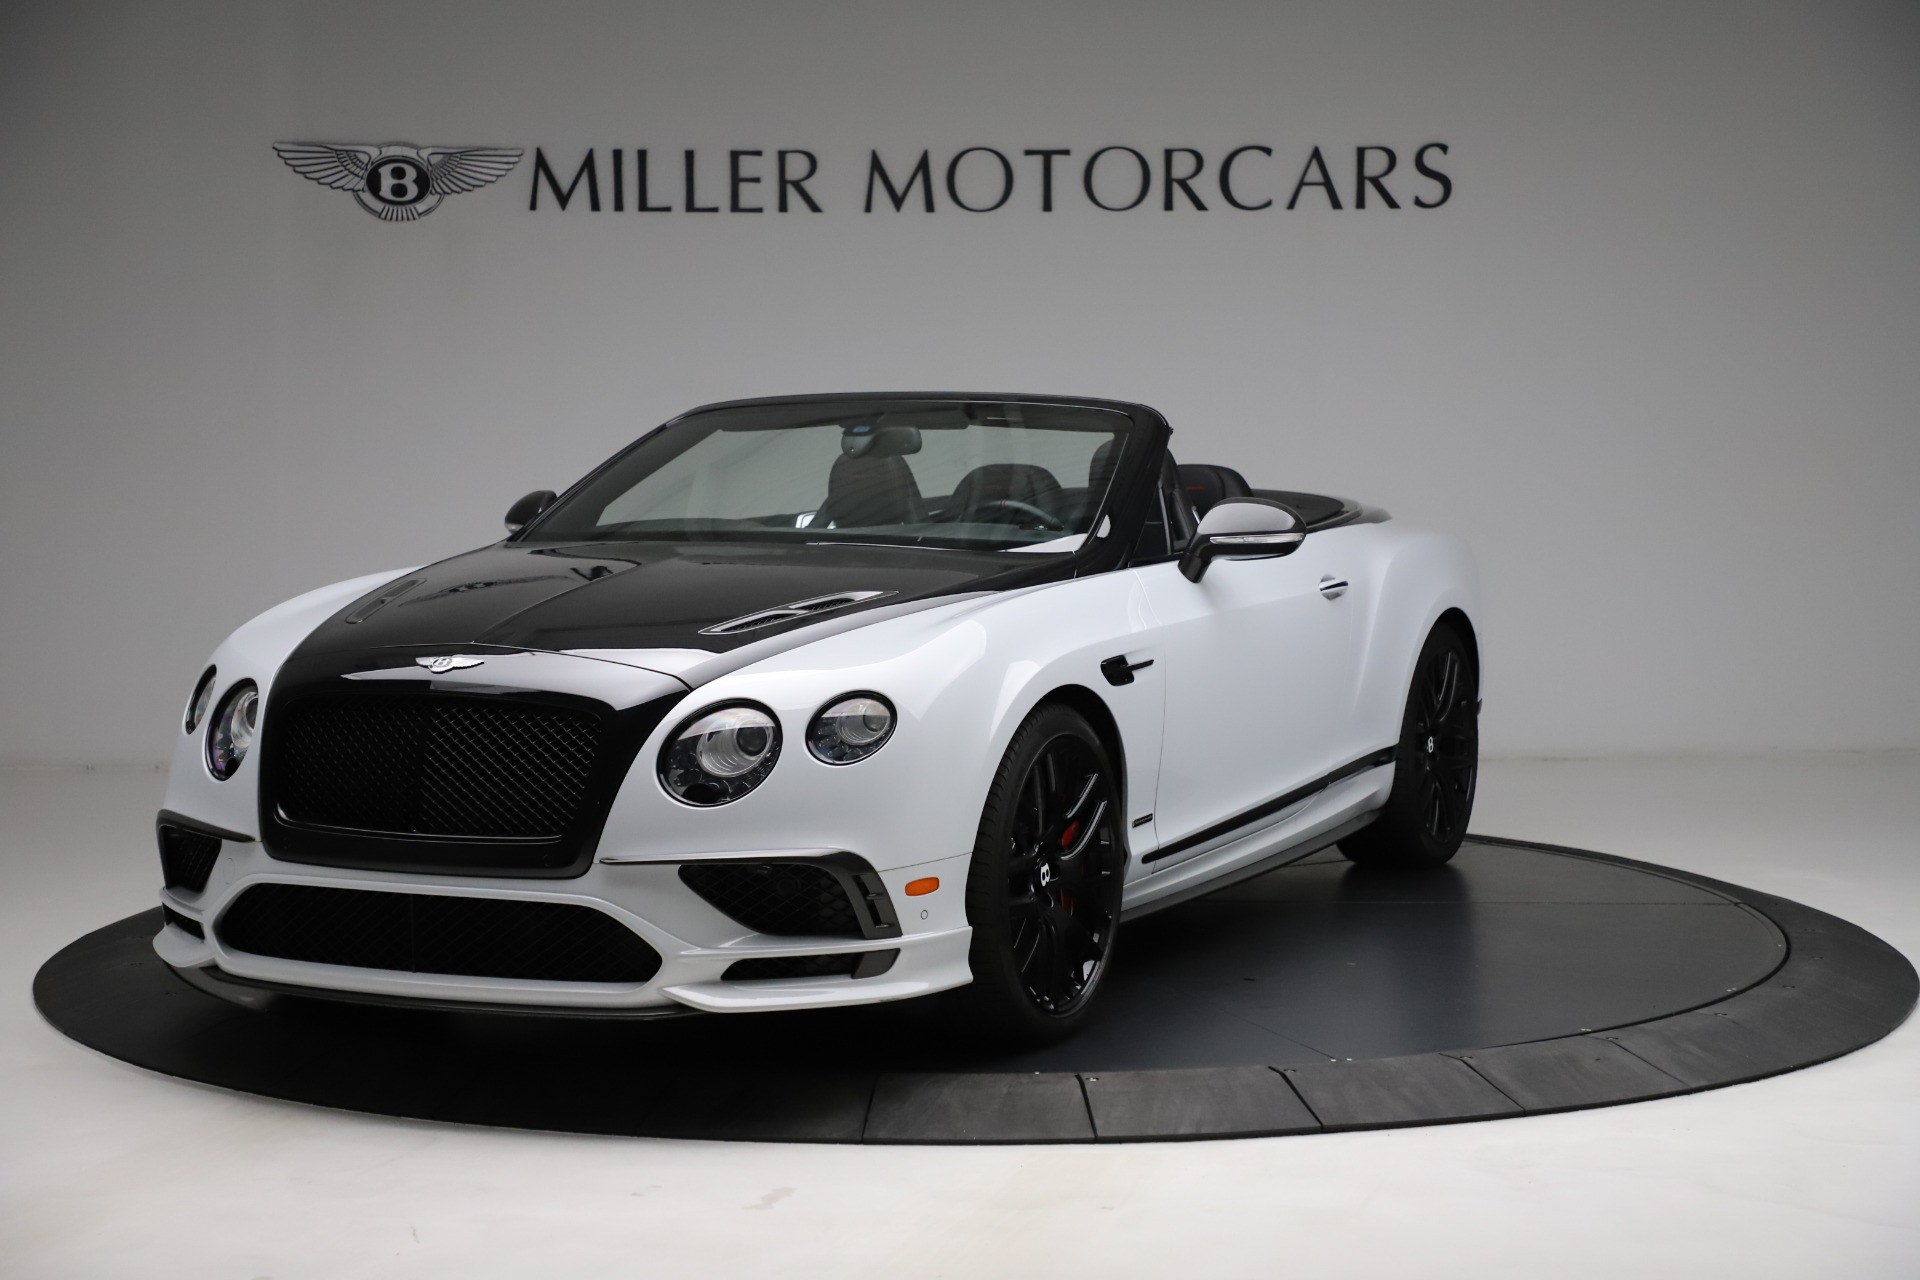 Used 2018 Bentley Continental GT Supersports for sale $229,900 at Rolls-Royce Motor Cars Greenwich in Greenwich CT 06830 1